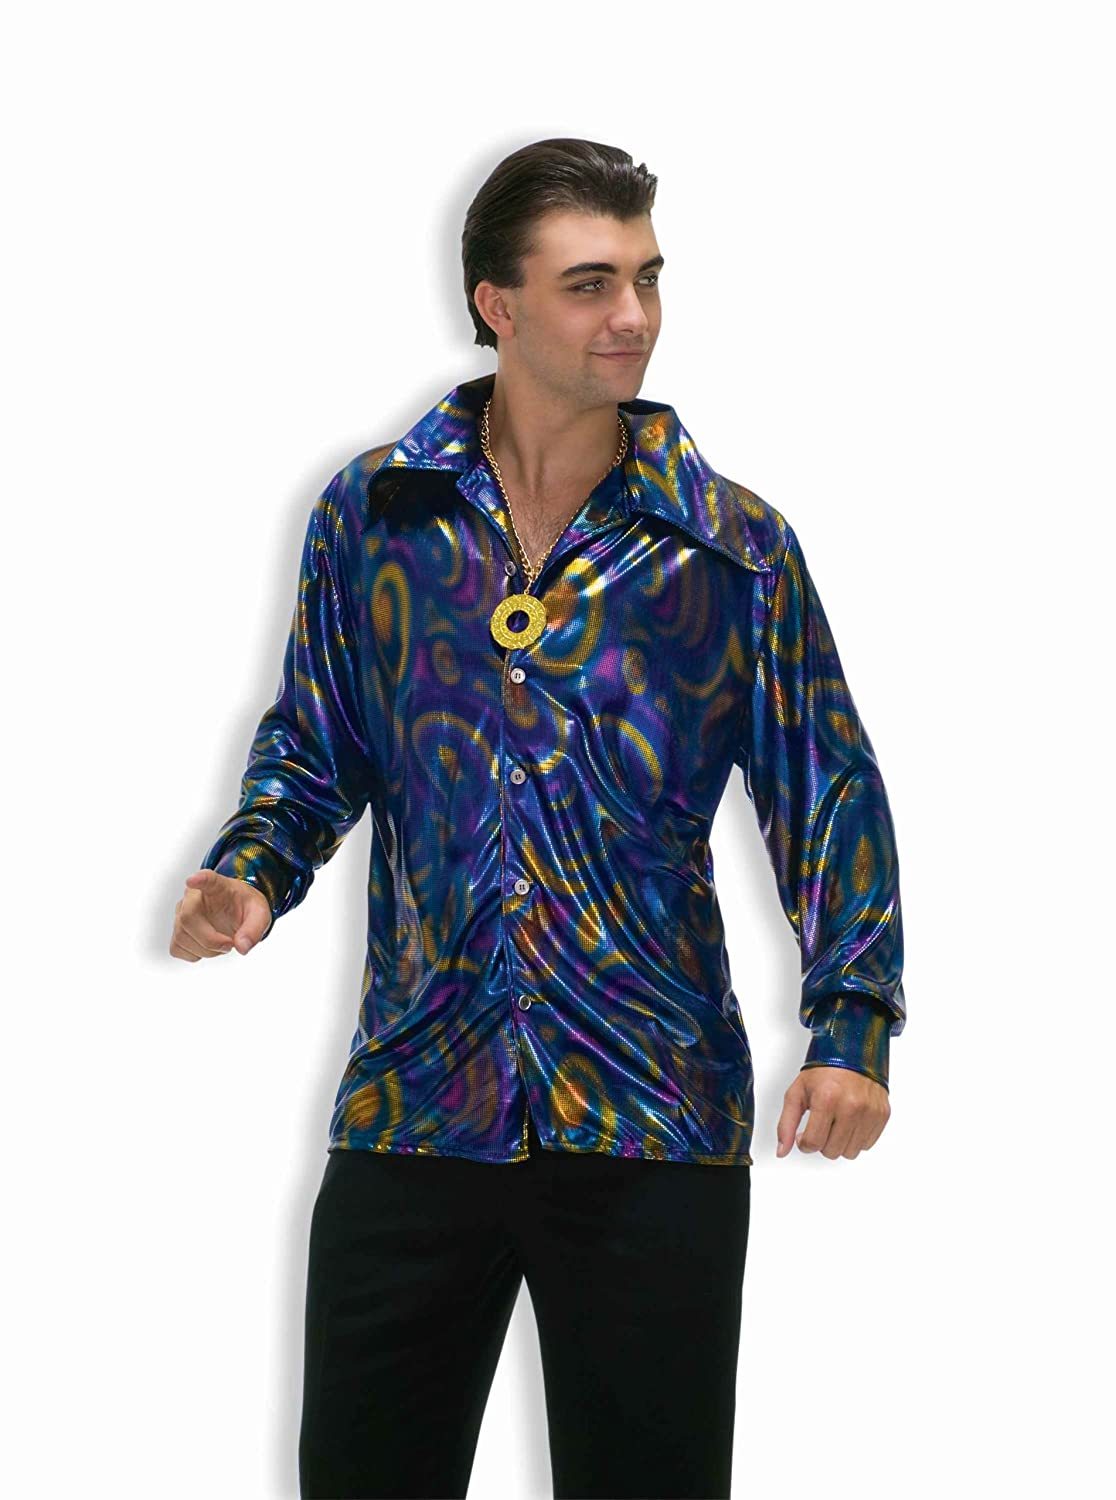 Men's Vintage Christmas Gift Ideas Forum Novelties Mens 70s Disco Dynamite Dude Costume Shirt $56.24 AT vintagedancer.com